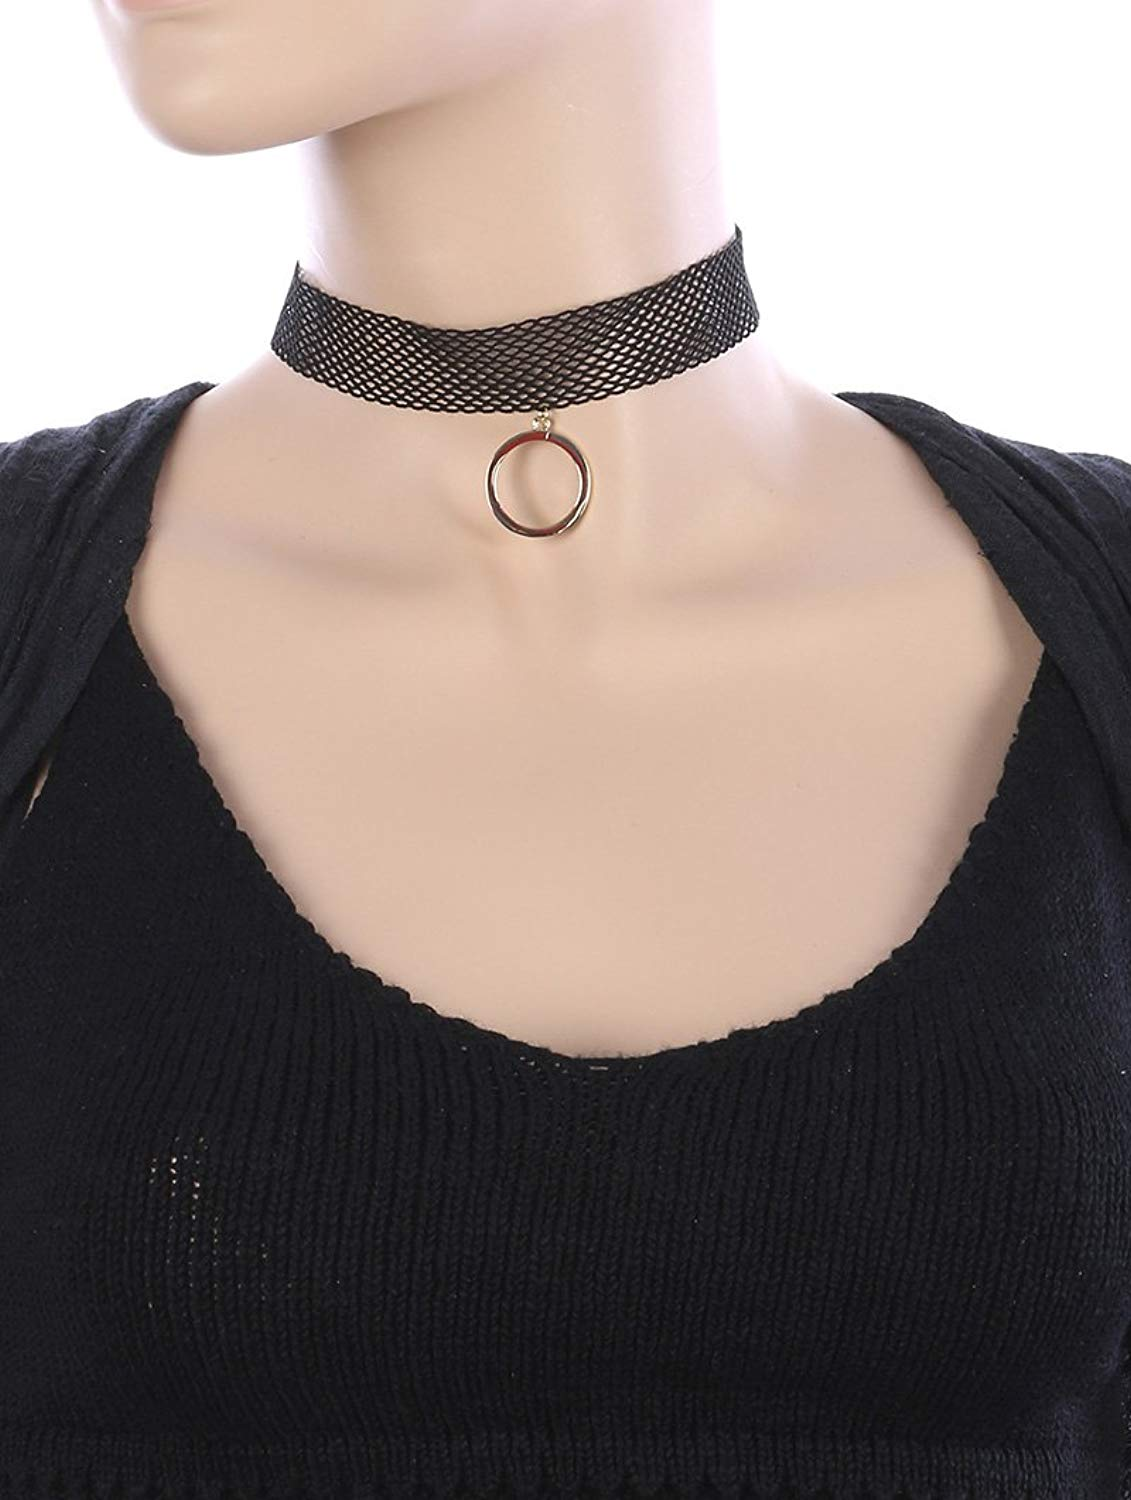 Destinees burgundy METAL RING CHARM FAUX LEATHER CHOKER NECKLACE